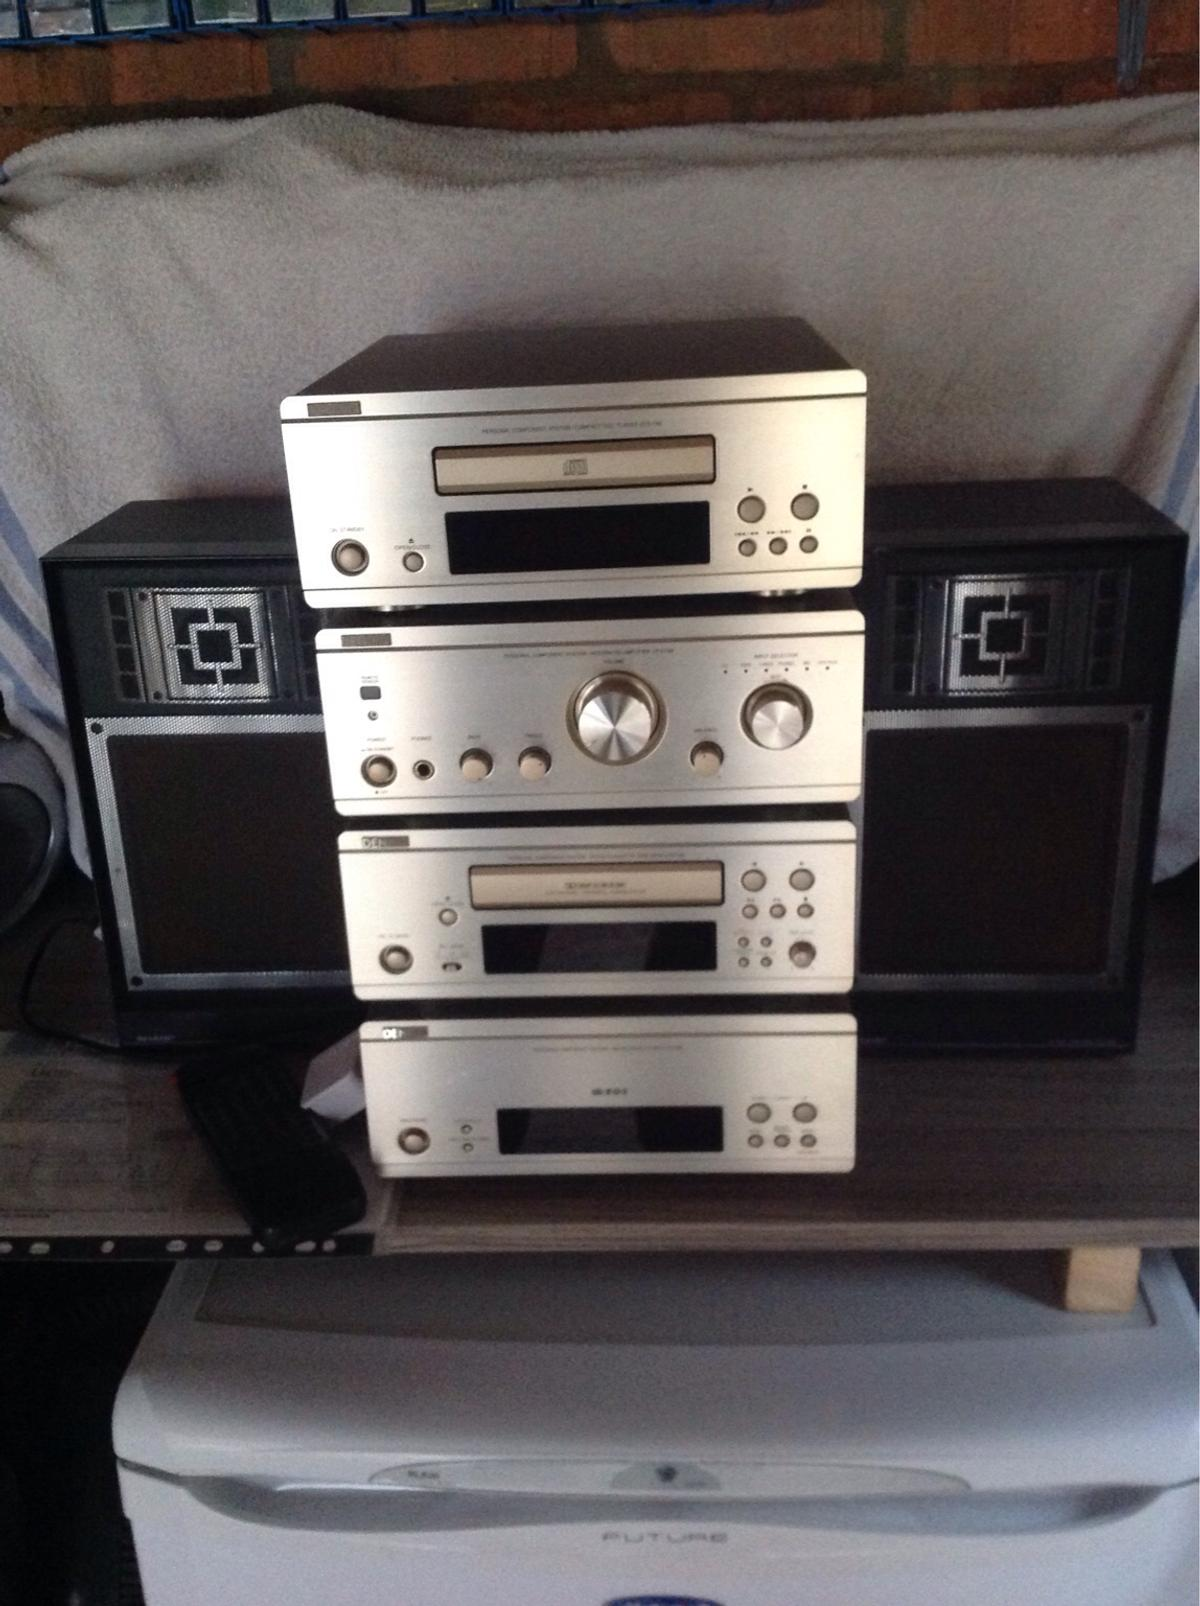 Denon Stack System Separates and Speakers